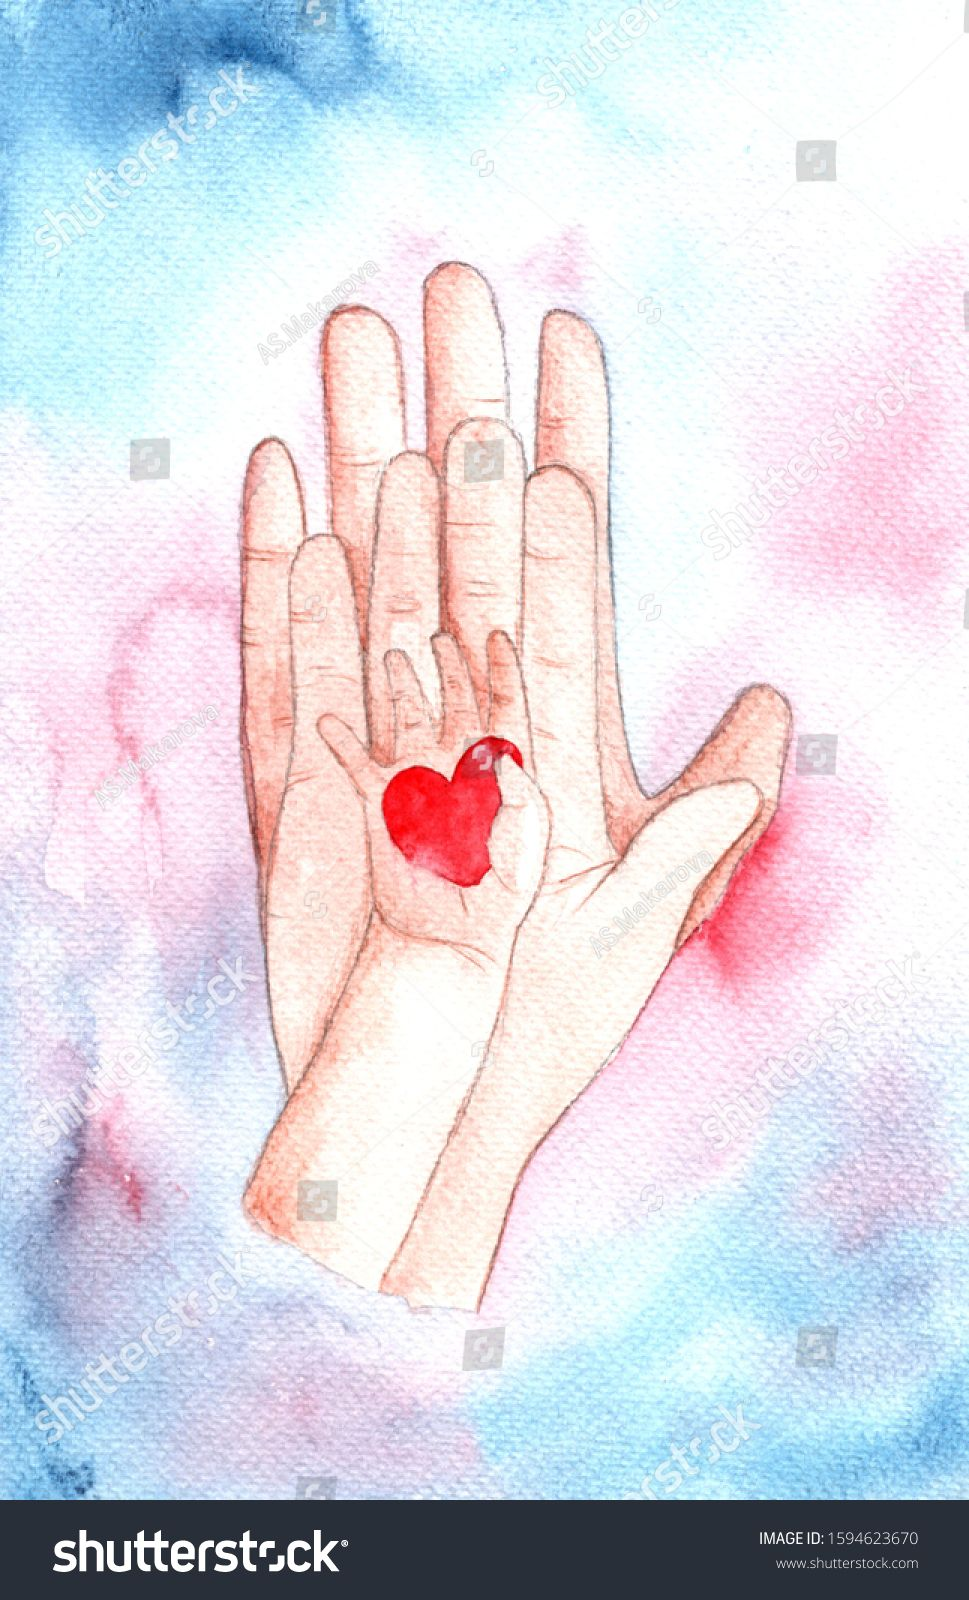 Watercolor hand drawn hand of dad,mom and baby holding a heart in their hands. - Buy this stock illustration and explore similar illustrations at Adobe Stock